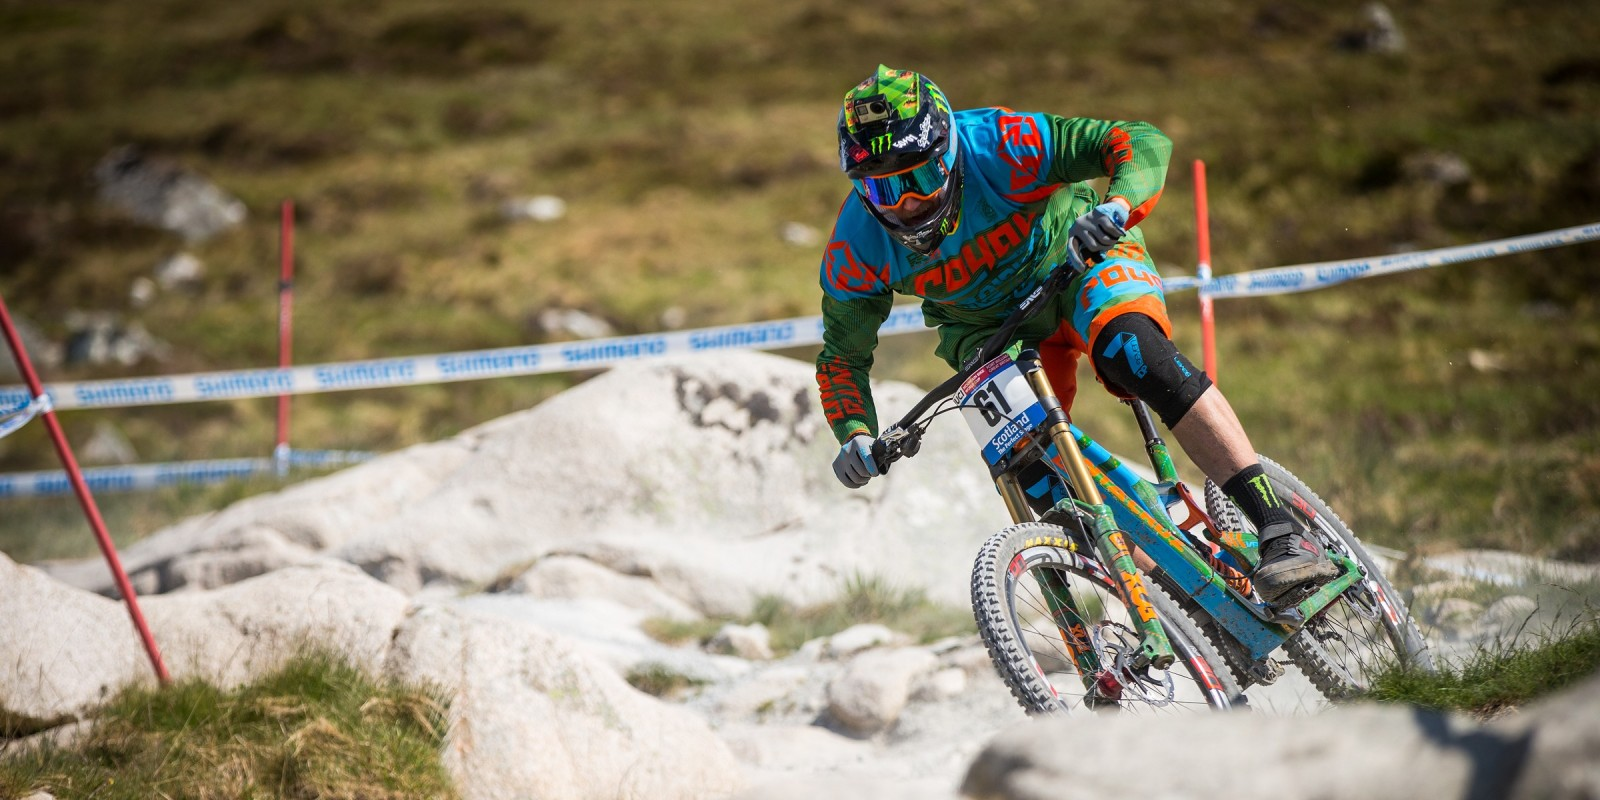 Monster riders compete in the 2016 UCI World Cup in Fort William, Scotland.